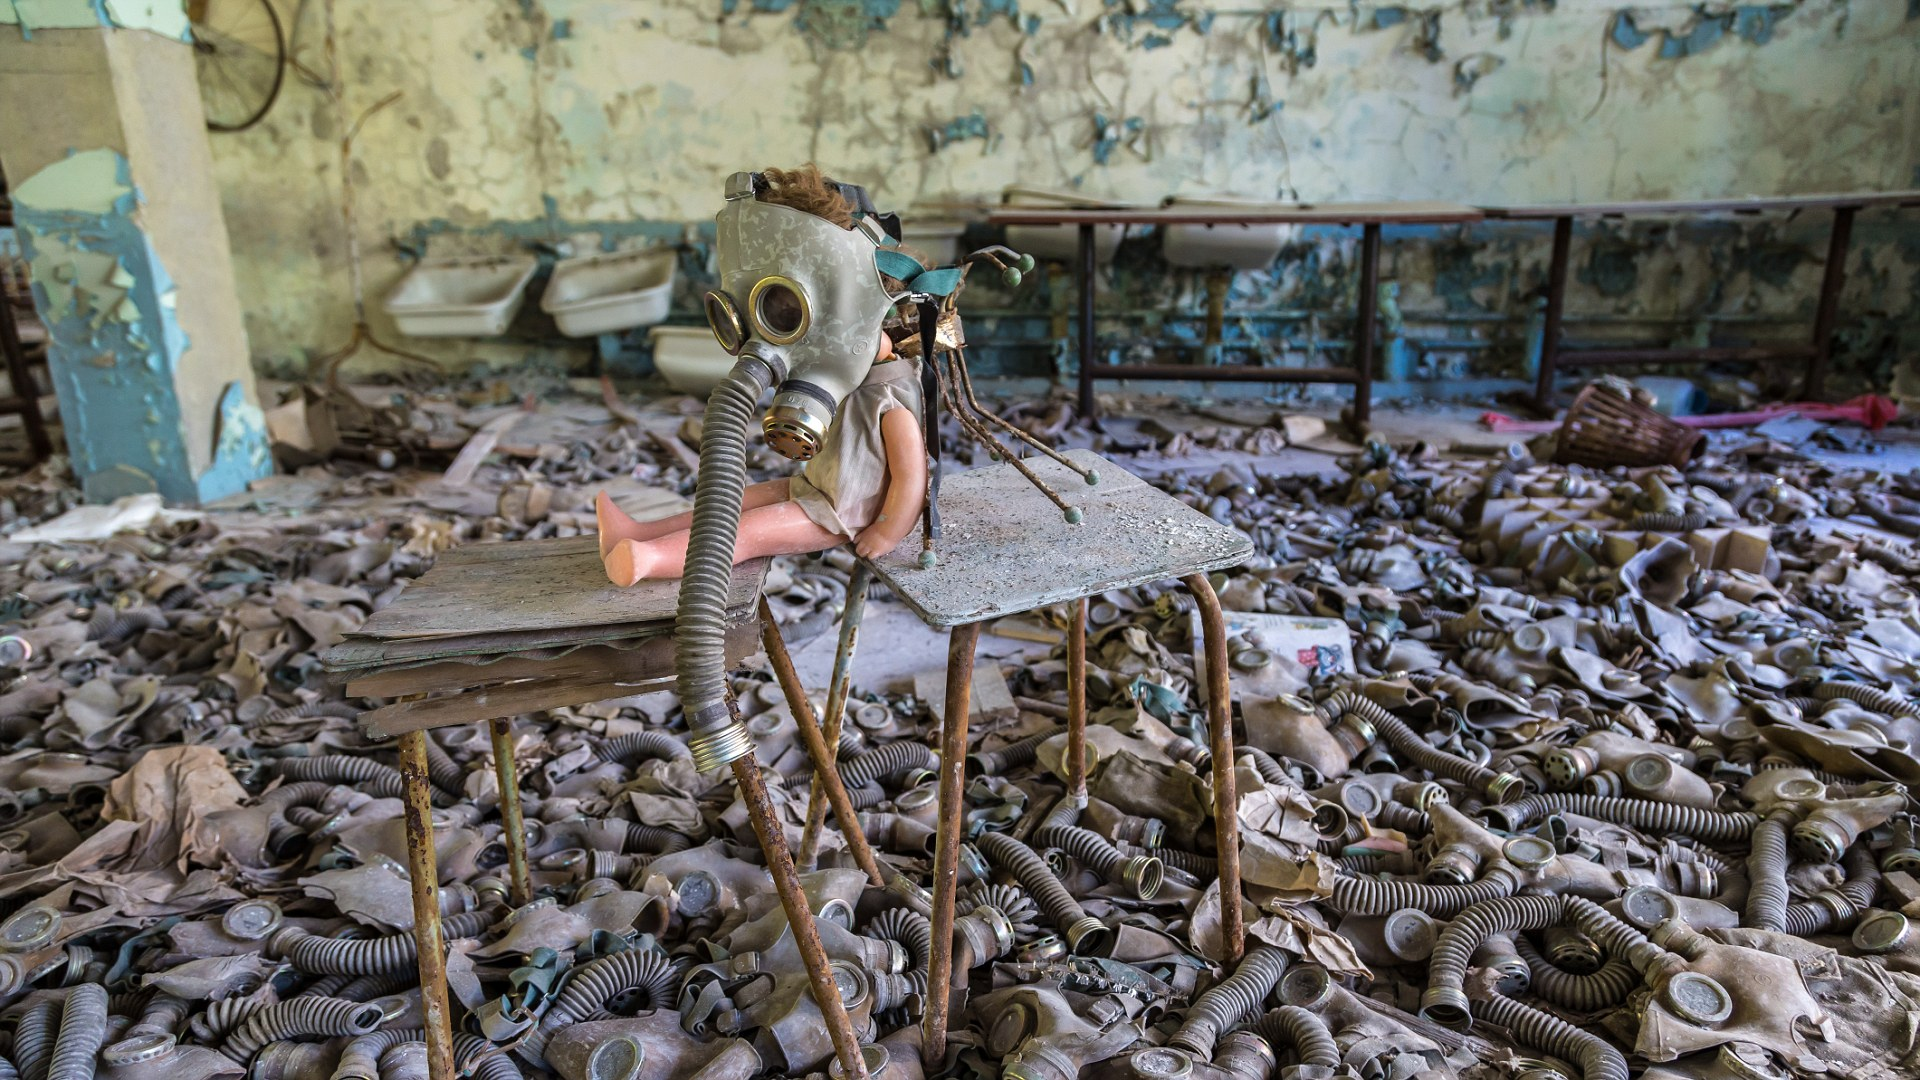 Creepy doll in middle school in Pripyat, Chernobyl region, Ukraine in a summer day; Shutterstock ID 410972197